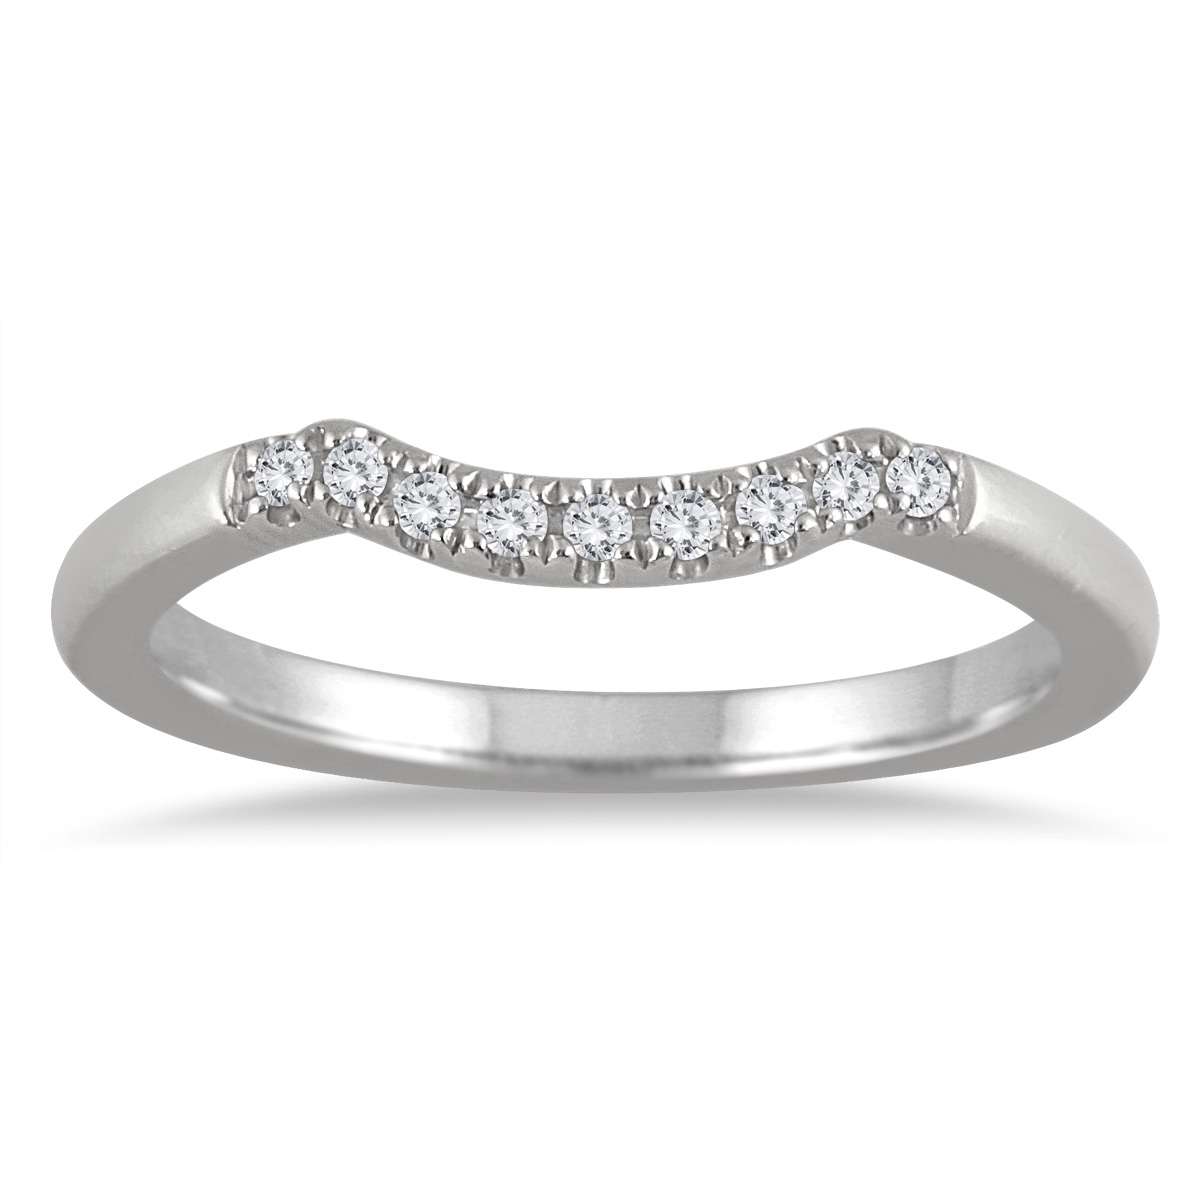 1/10 Carat TW Curved Diamond Wedding Band in 14K White Gold